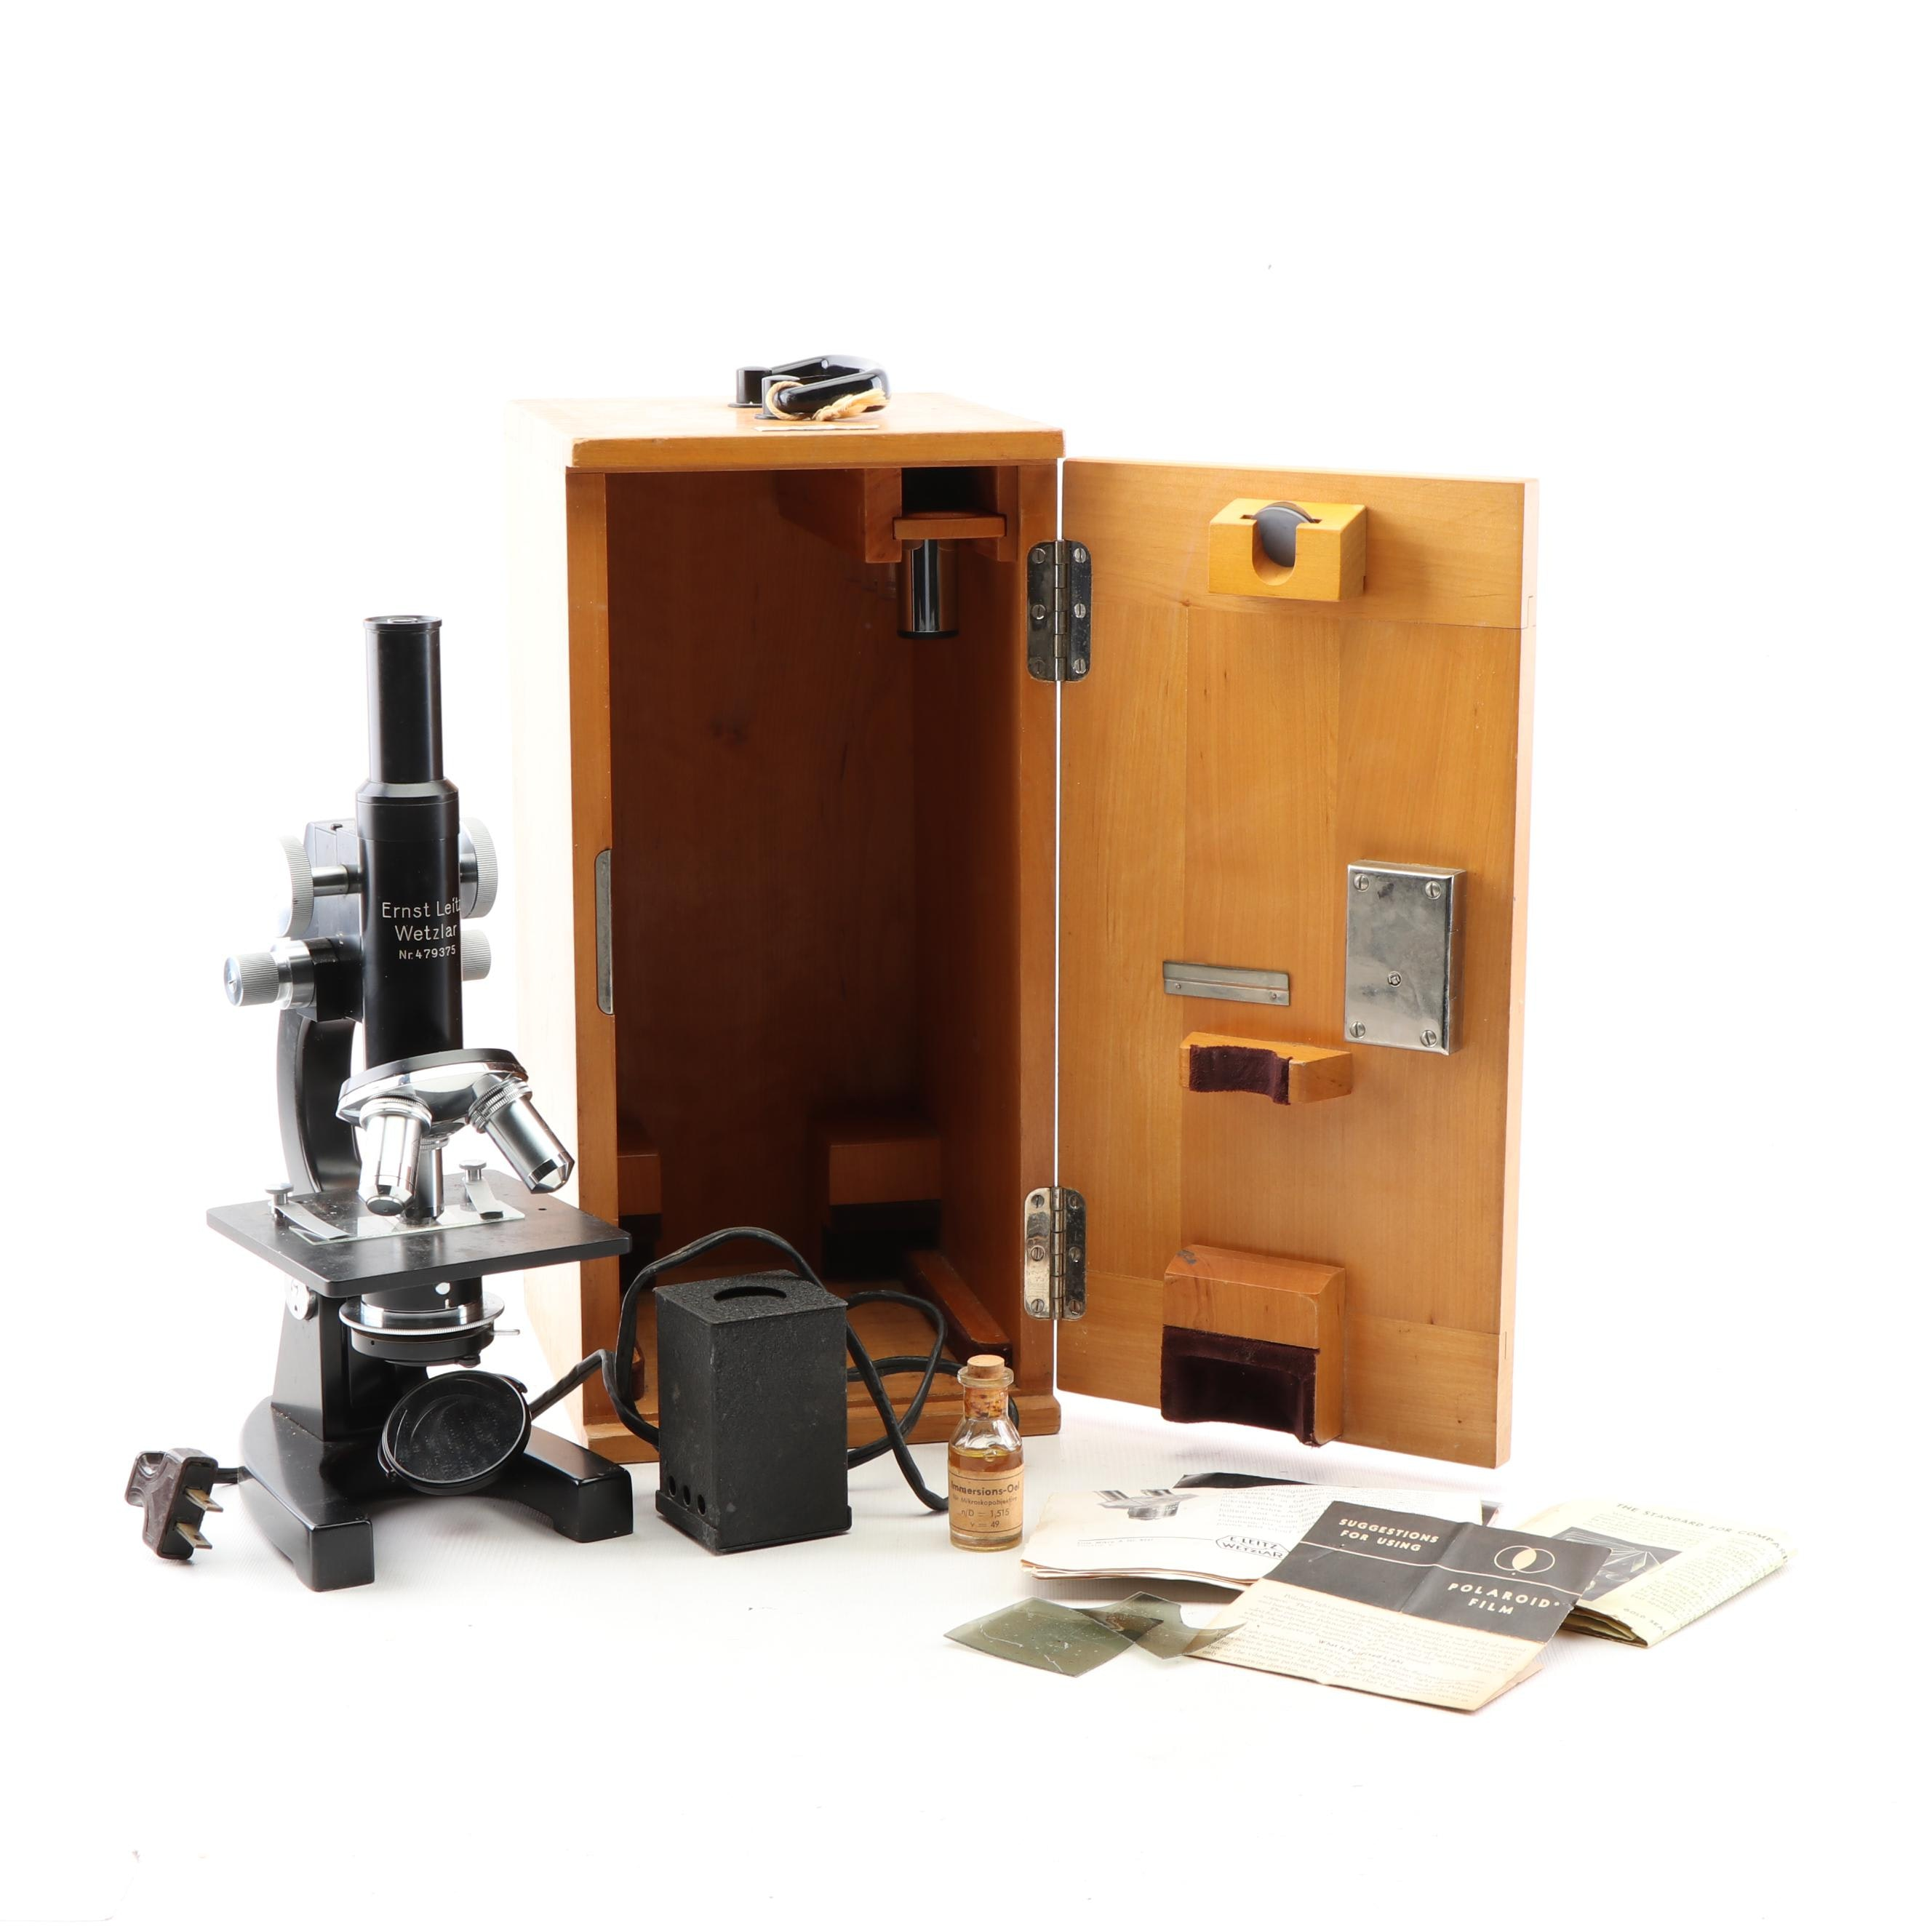 Ernst Leitz Wetzlar 479375 Microscope in Wooden Case with Accessories, Vintage